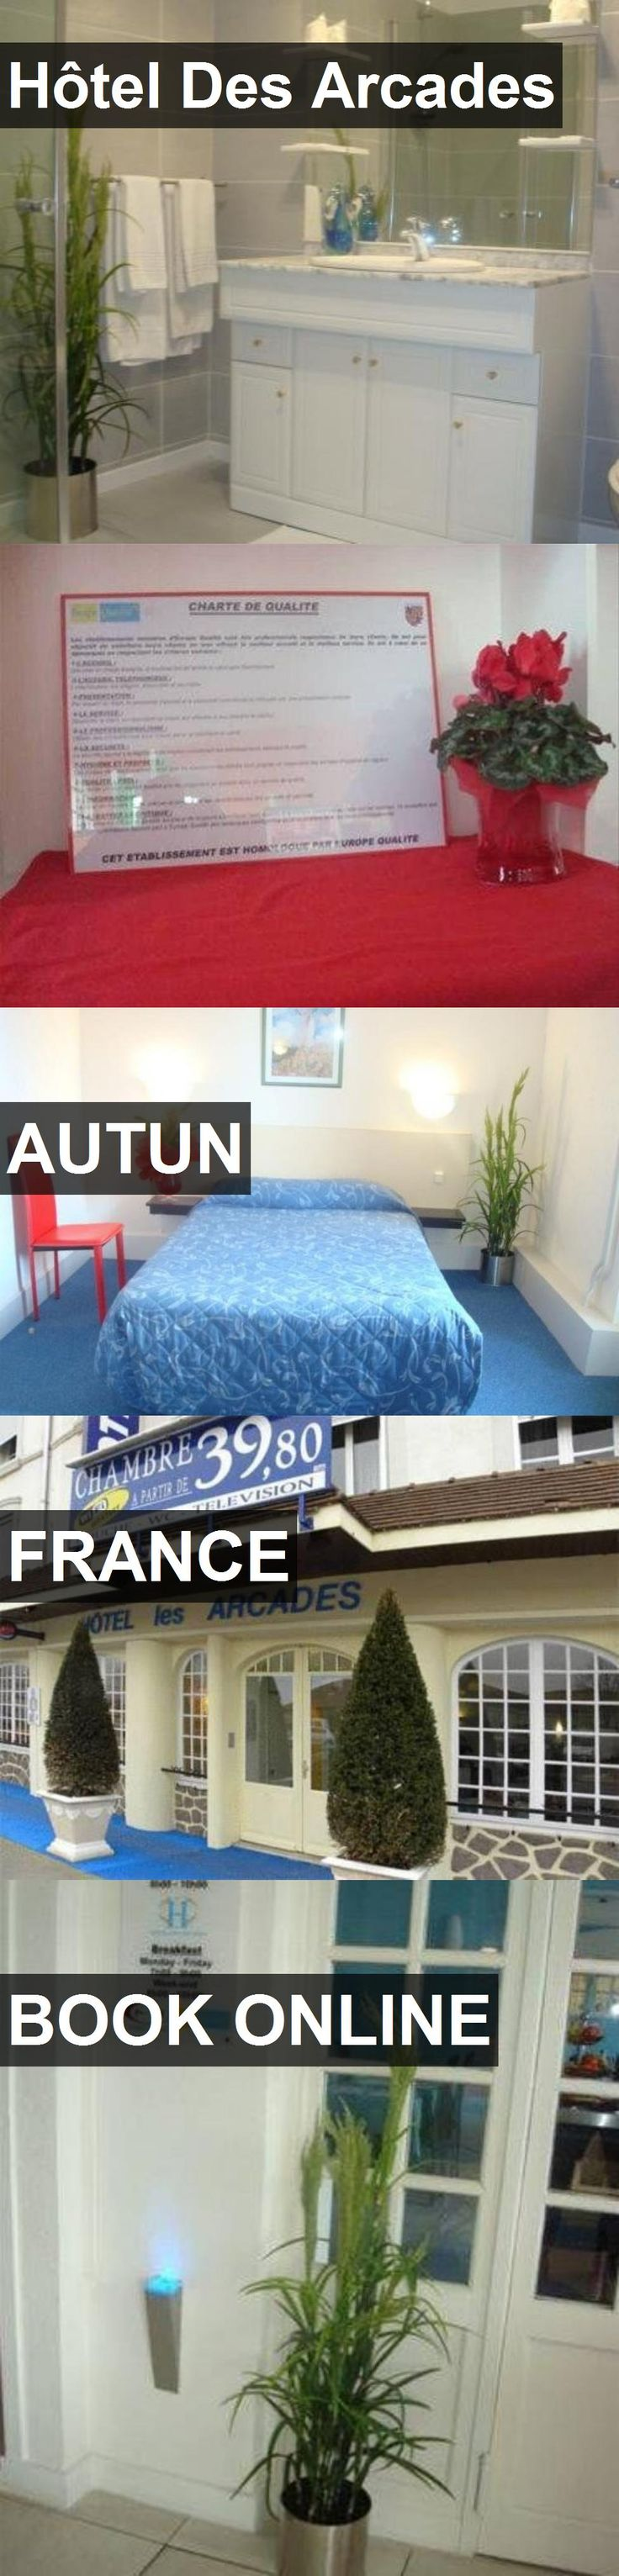 Hotel Hôtel Des Arcades in Autun, France. For more information, photos, reviews and best prices please follow the link. #France #Autun #HôtelDesArcades #hotel #travel #vacation